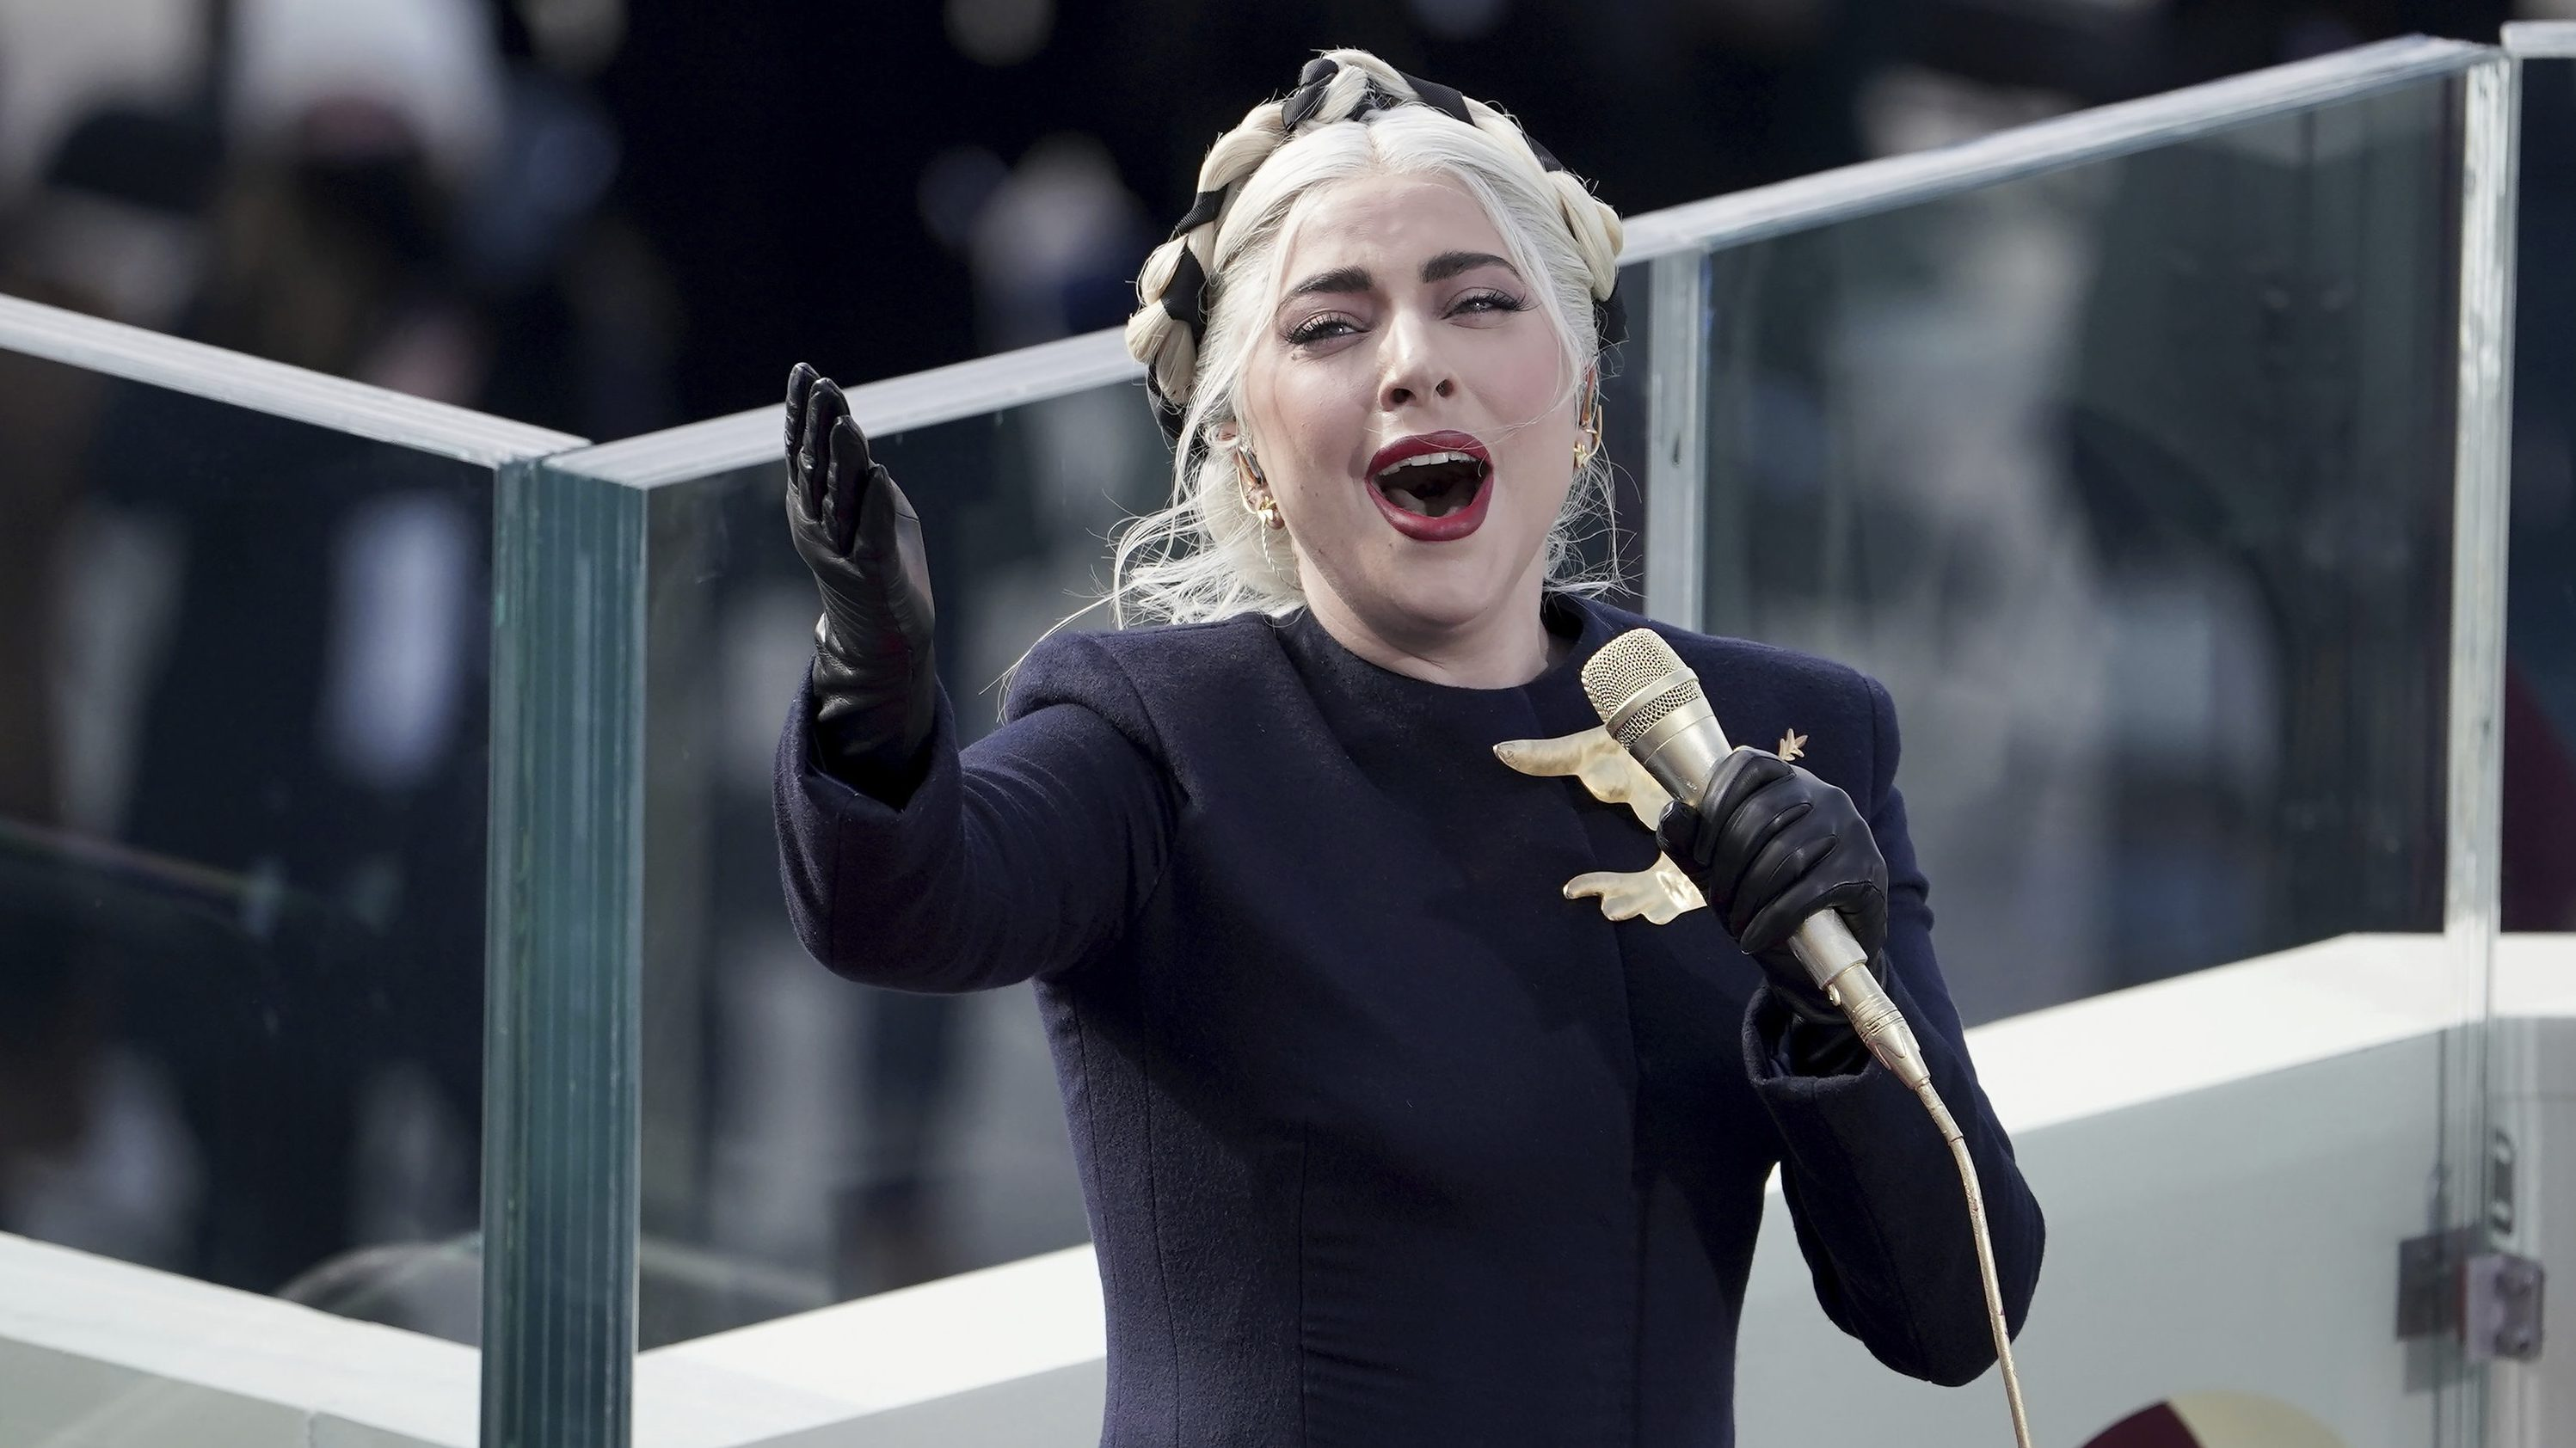 Lady Gaga sings the national anthem during the 59th Presidential Inauguration at the U.S. Capitol for President-elect Joe Biden in Washington, D.C., Jan. 20, 2021. (Greg Nash/AP)